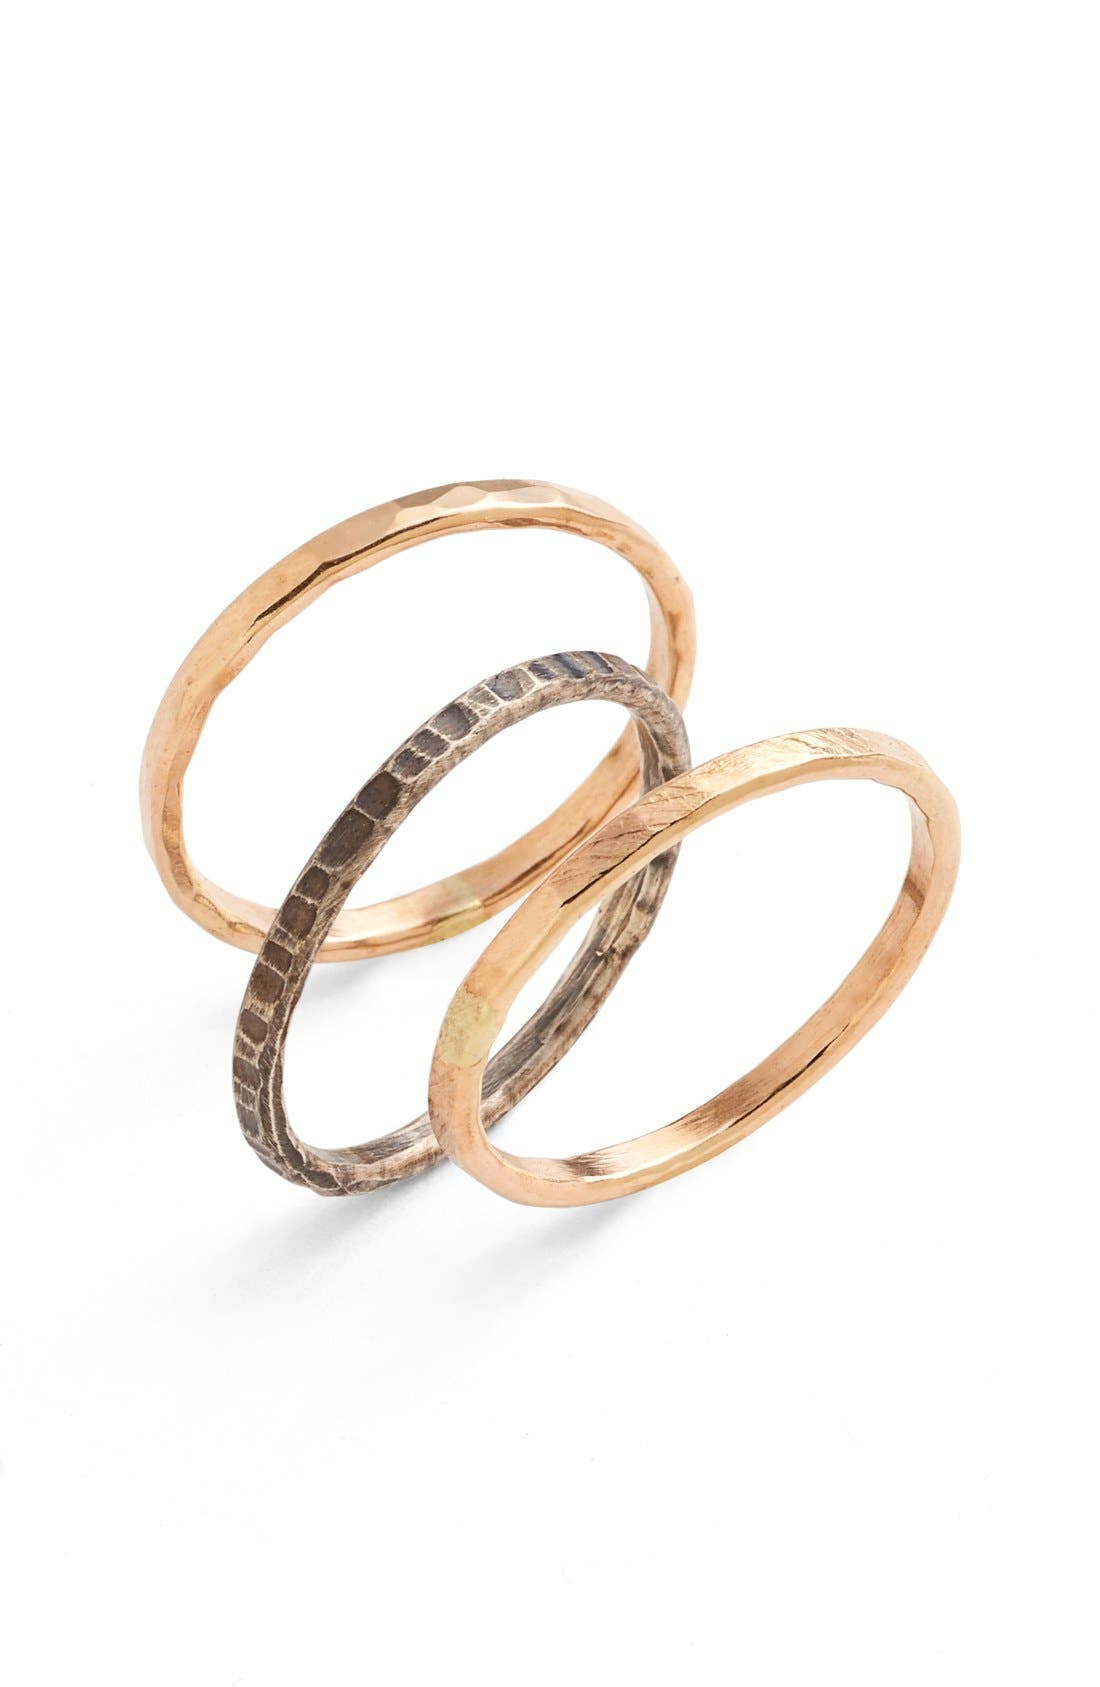 Main Image - Nashelle Ija Stackable Hammered Rings (Set of 3)